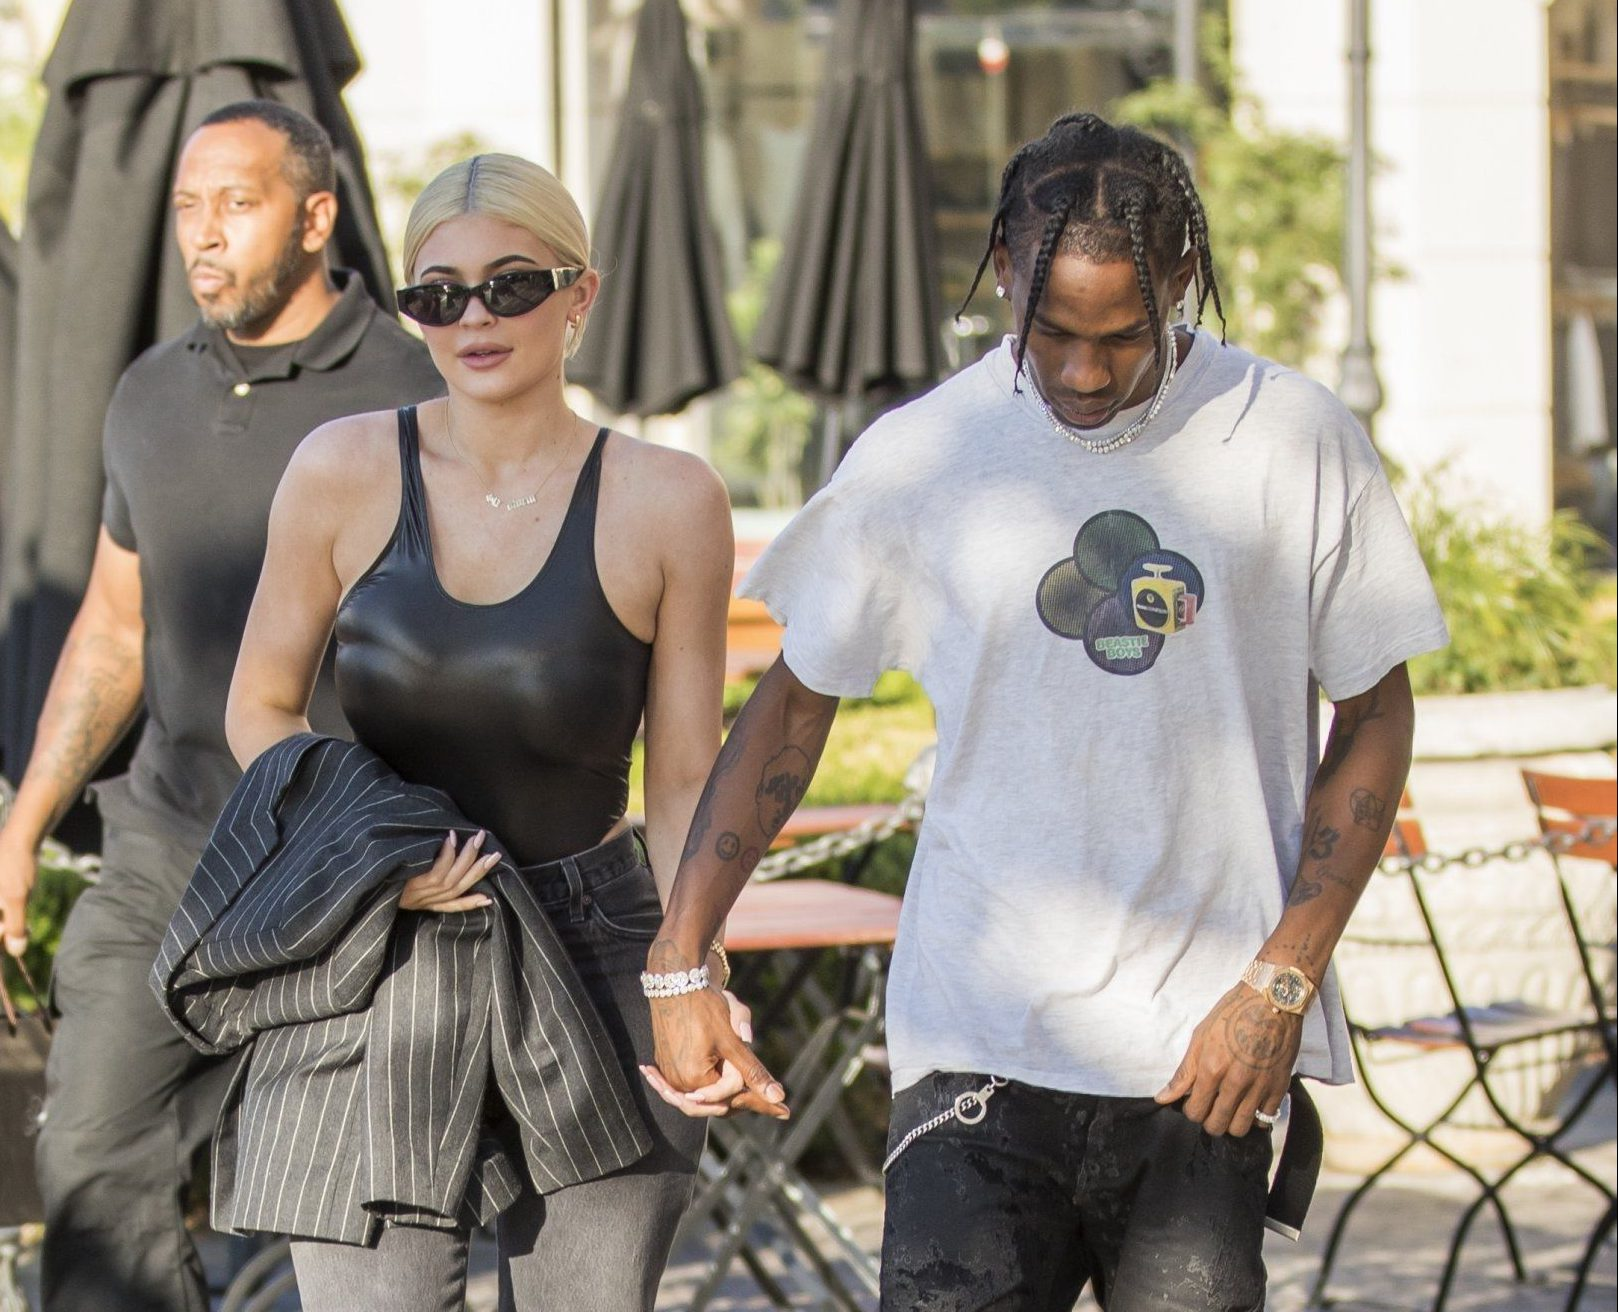 Calabasas, CA - Kylie Jenner and Travis Scott hold hands as they head in to Polacheck's for some shopping a few days after her 21st birthday. Could the pair be looking to finally tie the knot? Pictured: Kylie Jenner, Travis Scott BACKGRID USA 13 AUGUST 2018 BYLINE MUST READ: IXOLA / BACKGRID USA: +1 310 798 9111 / usasales@backgrid.com UK: +44 208 344 2007 / uksales@backgrid.com *UK Clients - Pictures Containing Children Please Pixelate Face Prior To Publication*